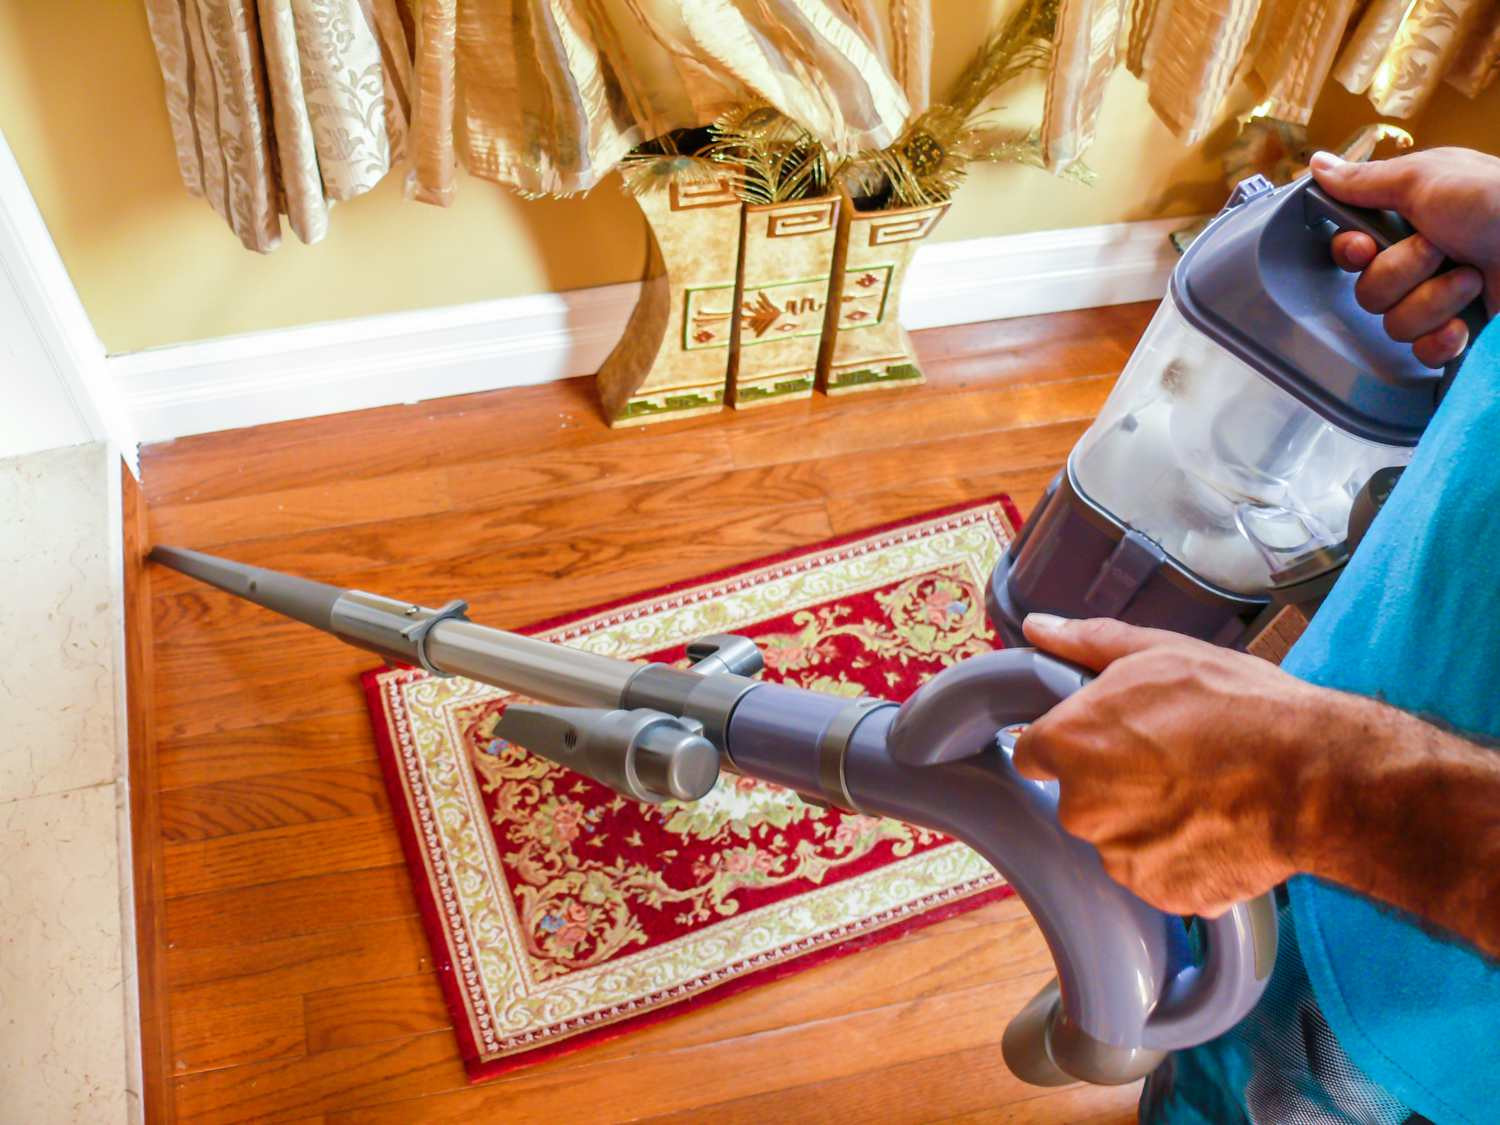 best vacuum for pet hair on hardwood floors and carpet of the 10 best vacuum cleaners to buy in 2018 with shark navigator lift away vacuum